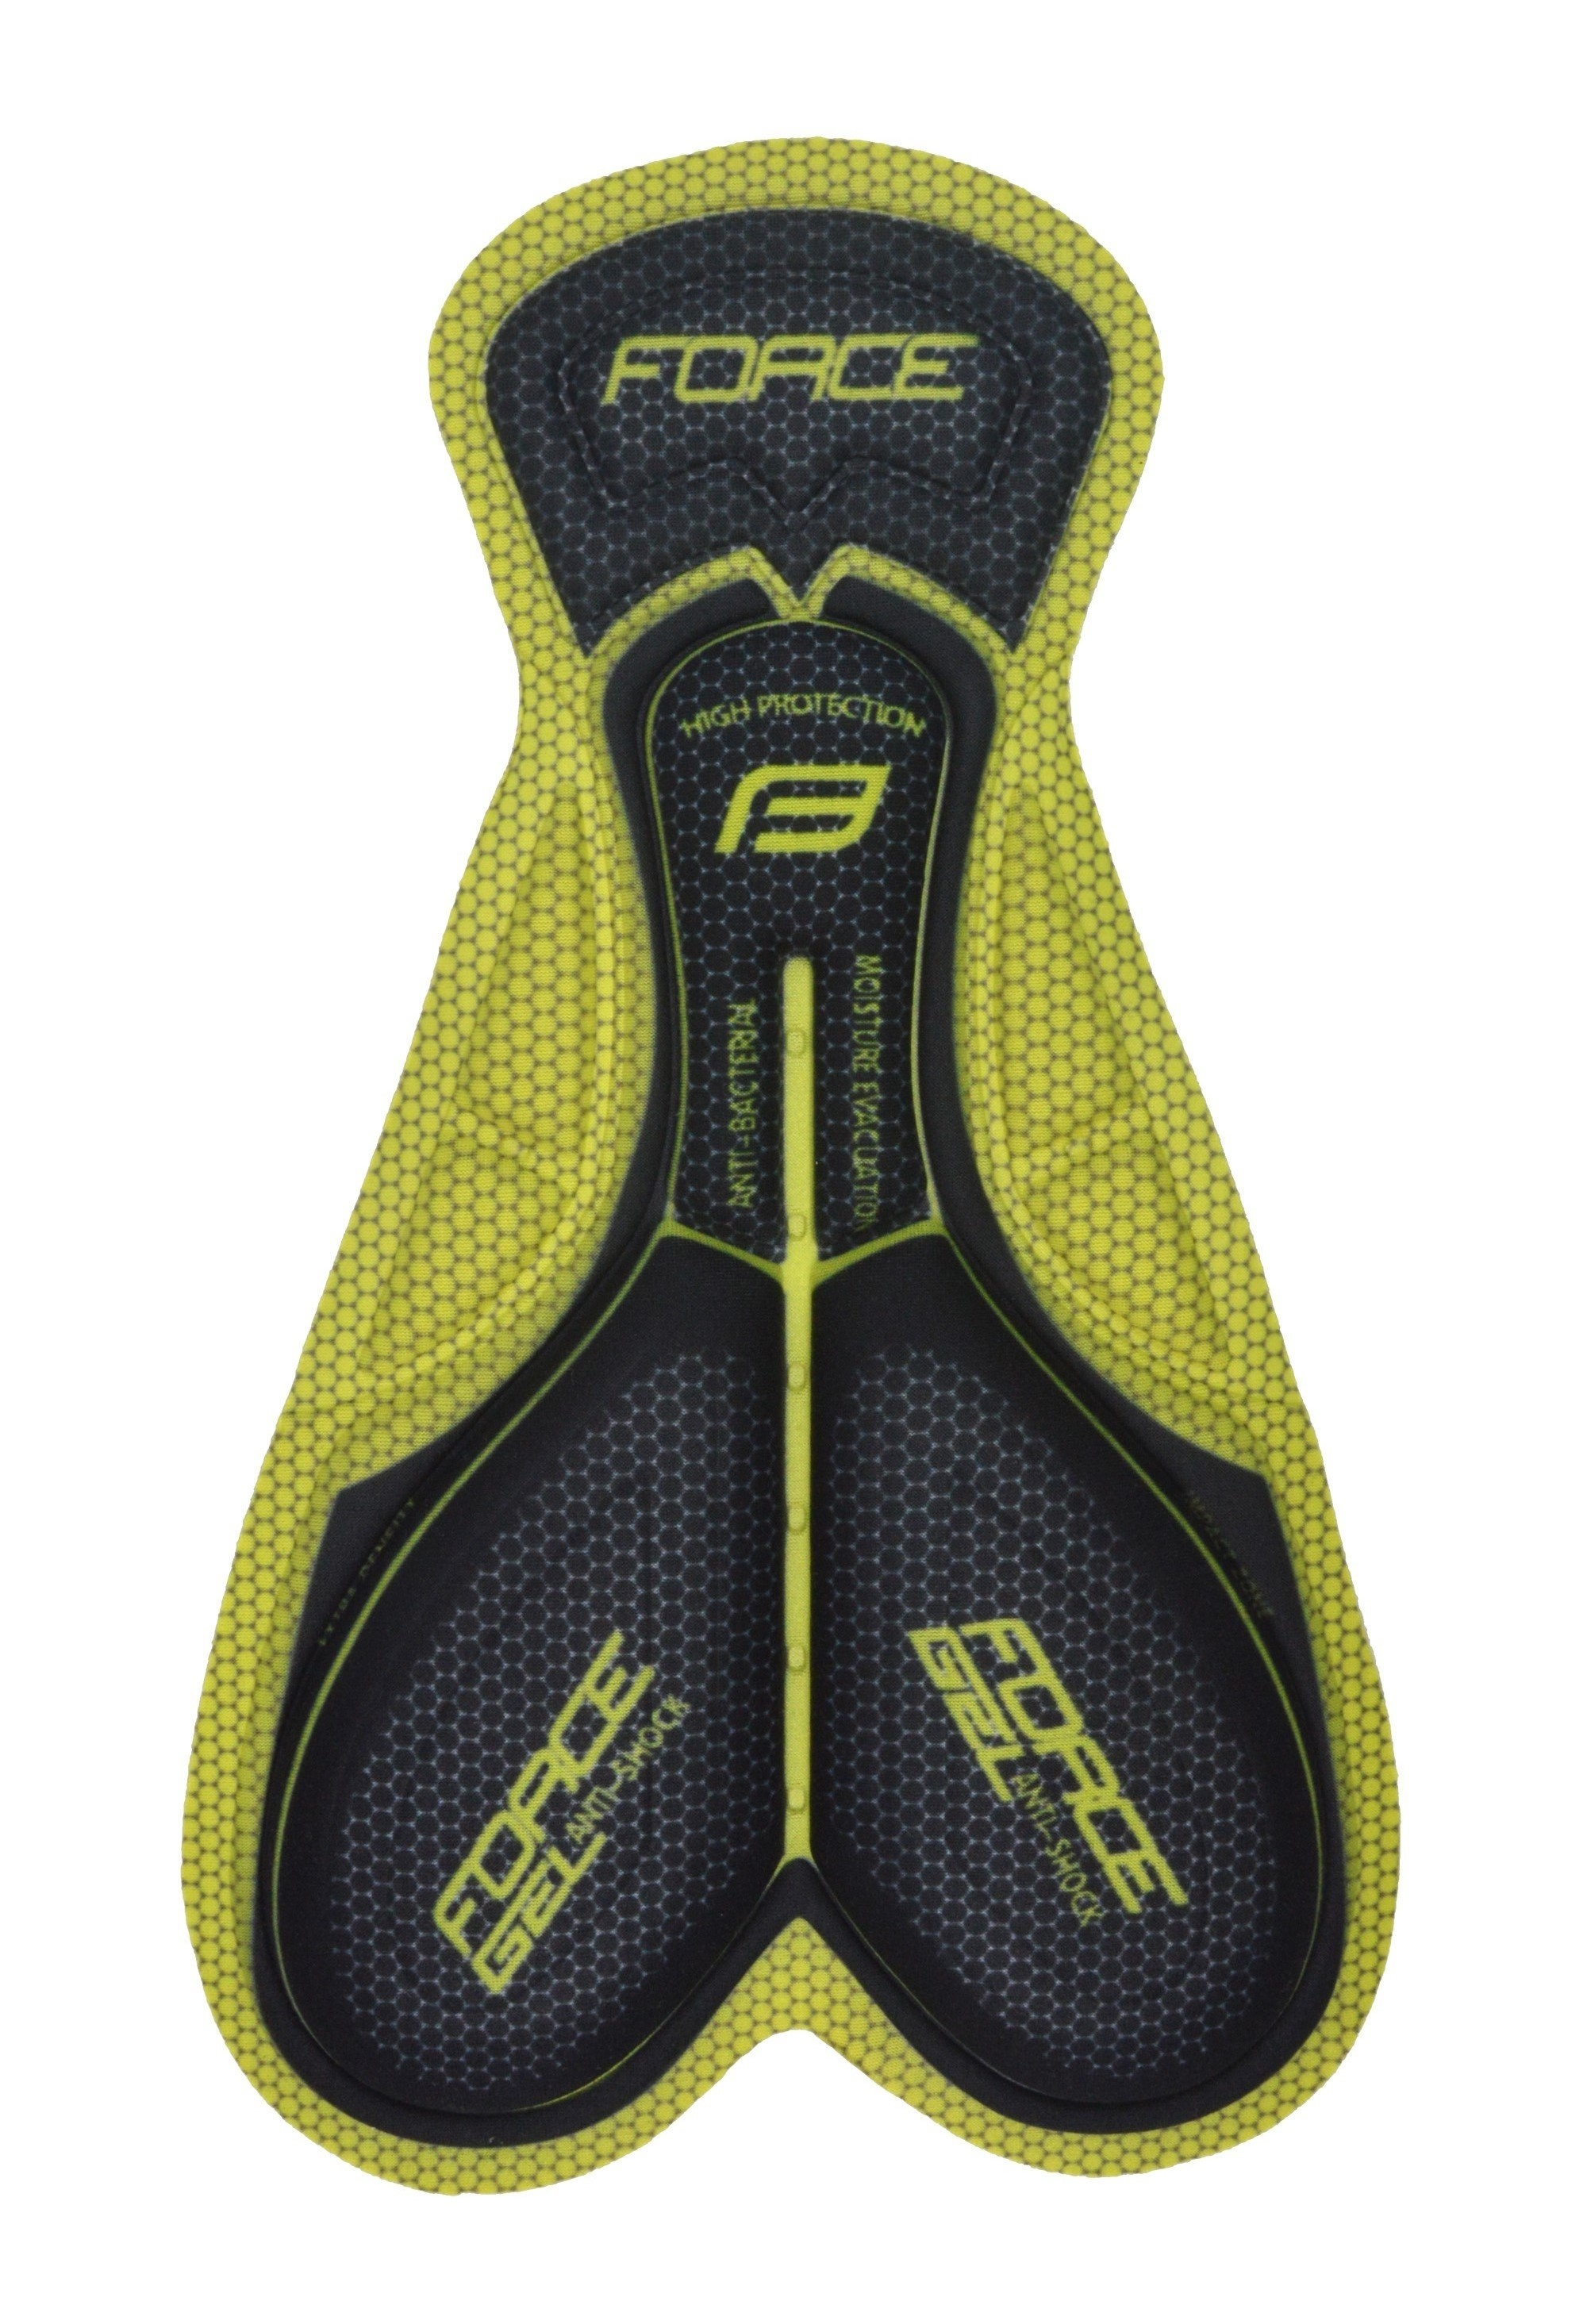 Cycling Bib Shorts Gel Pad